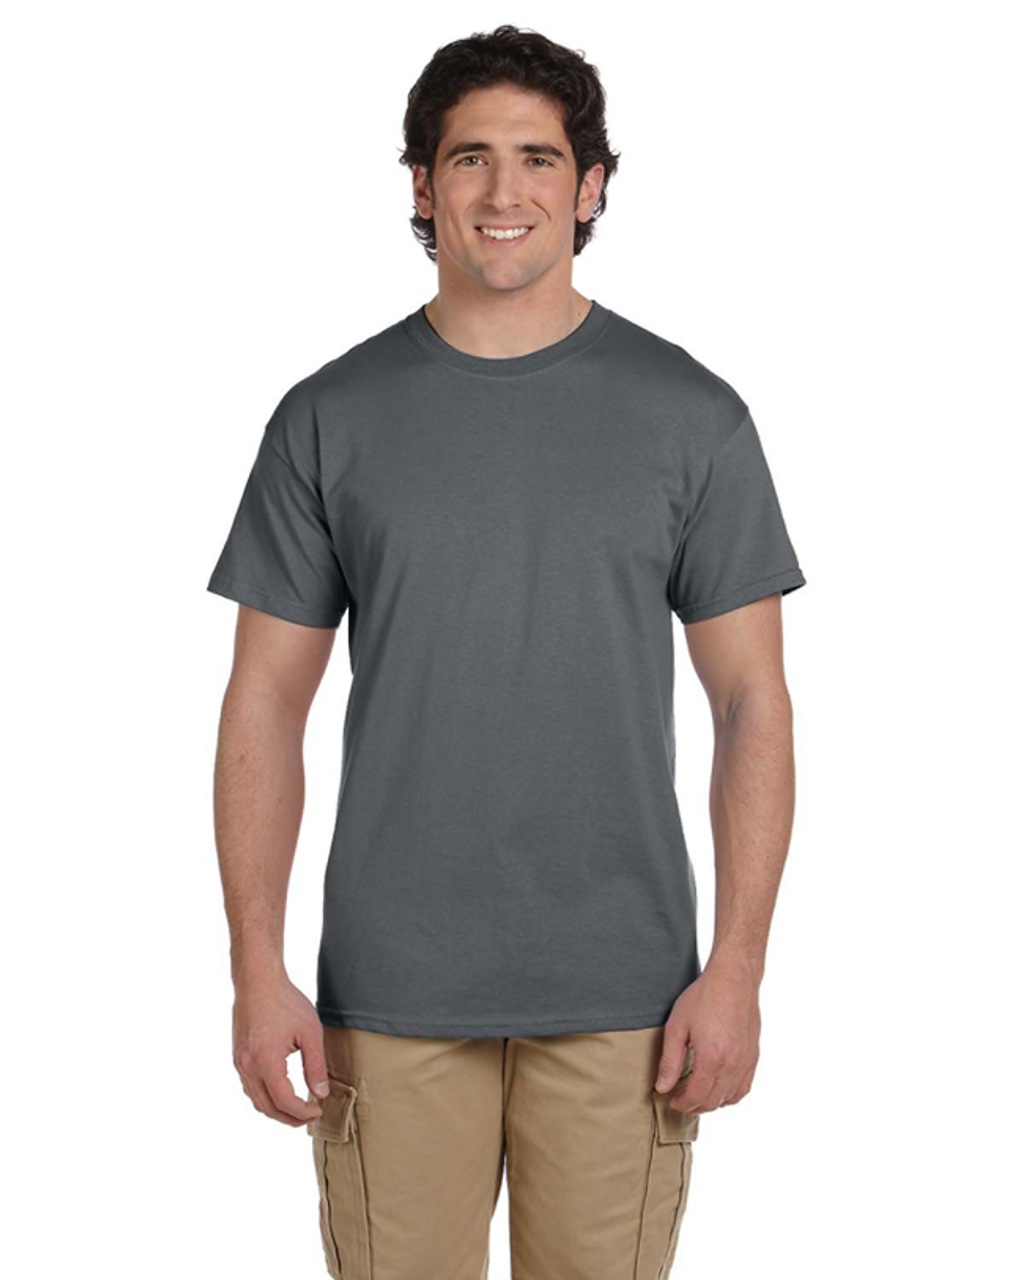 Charcoal Grey - 3931 Fruit of the Loom 100% Heavy Cotton HD® T-Shirt | Blankclothing.ca